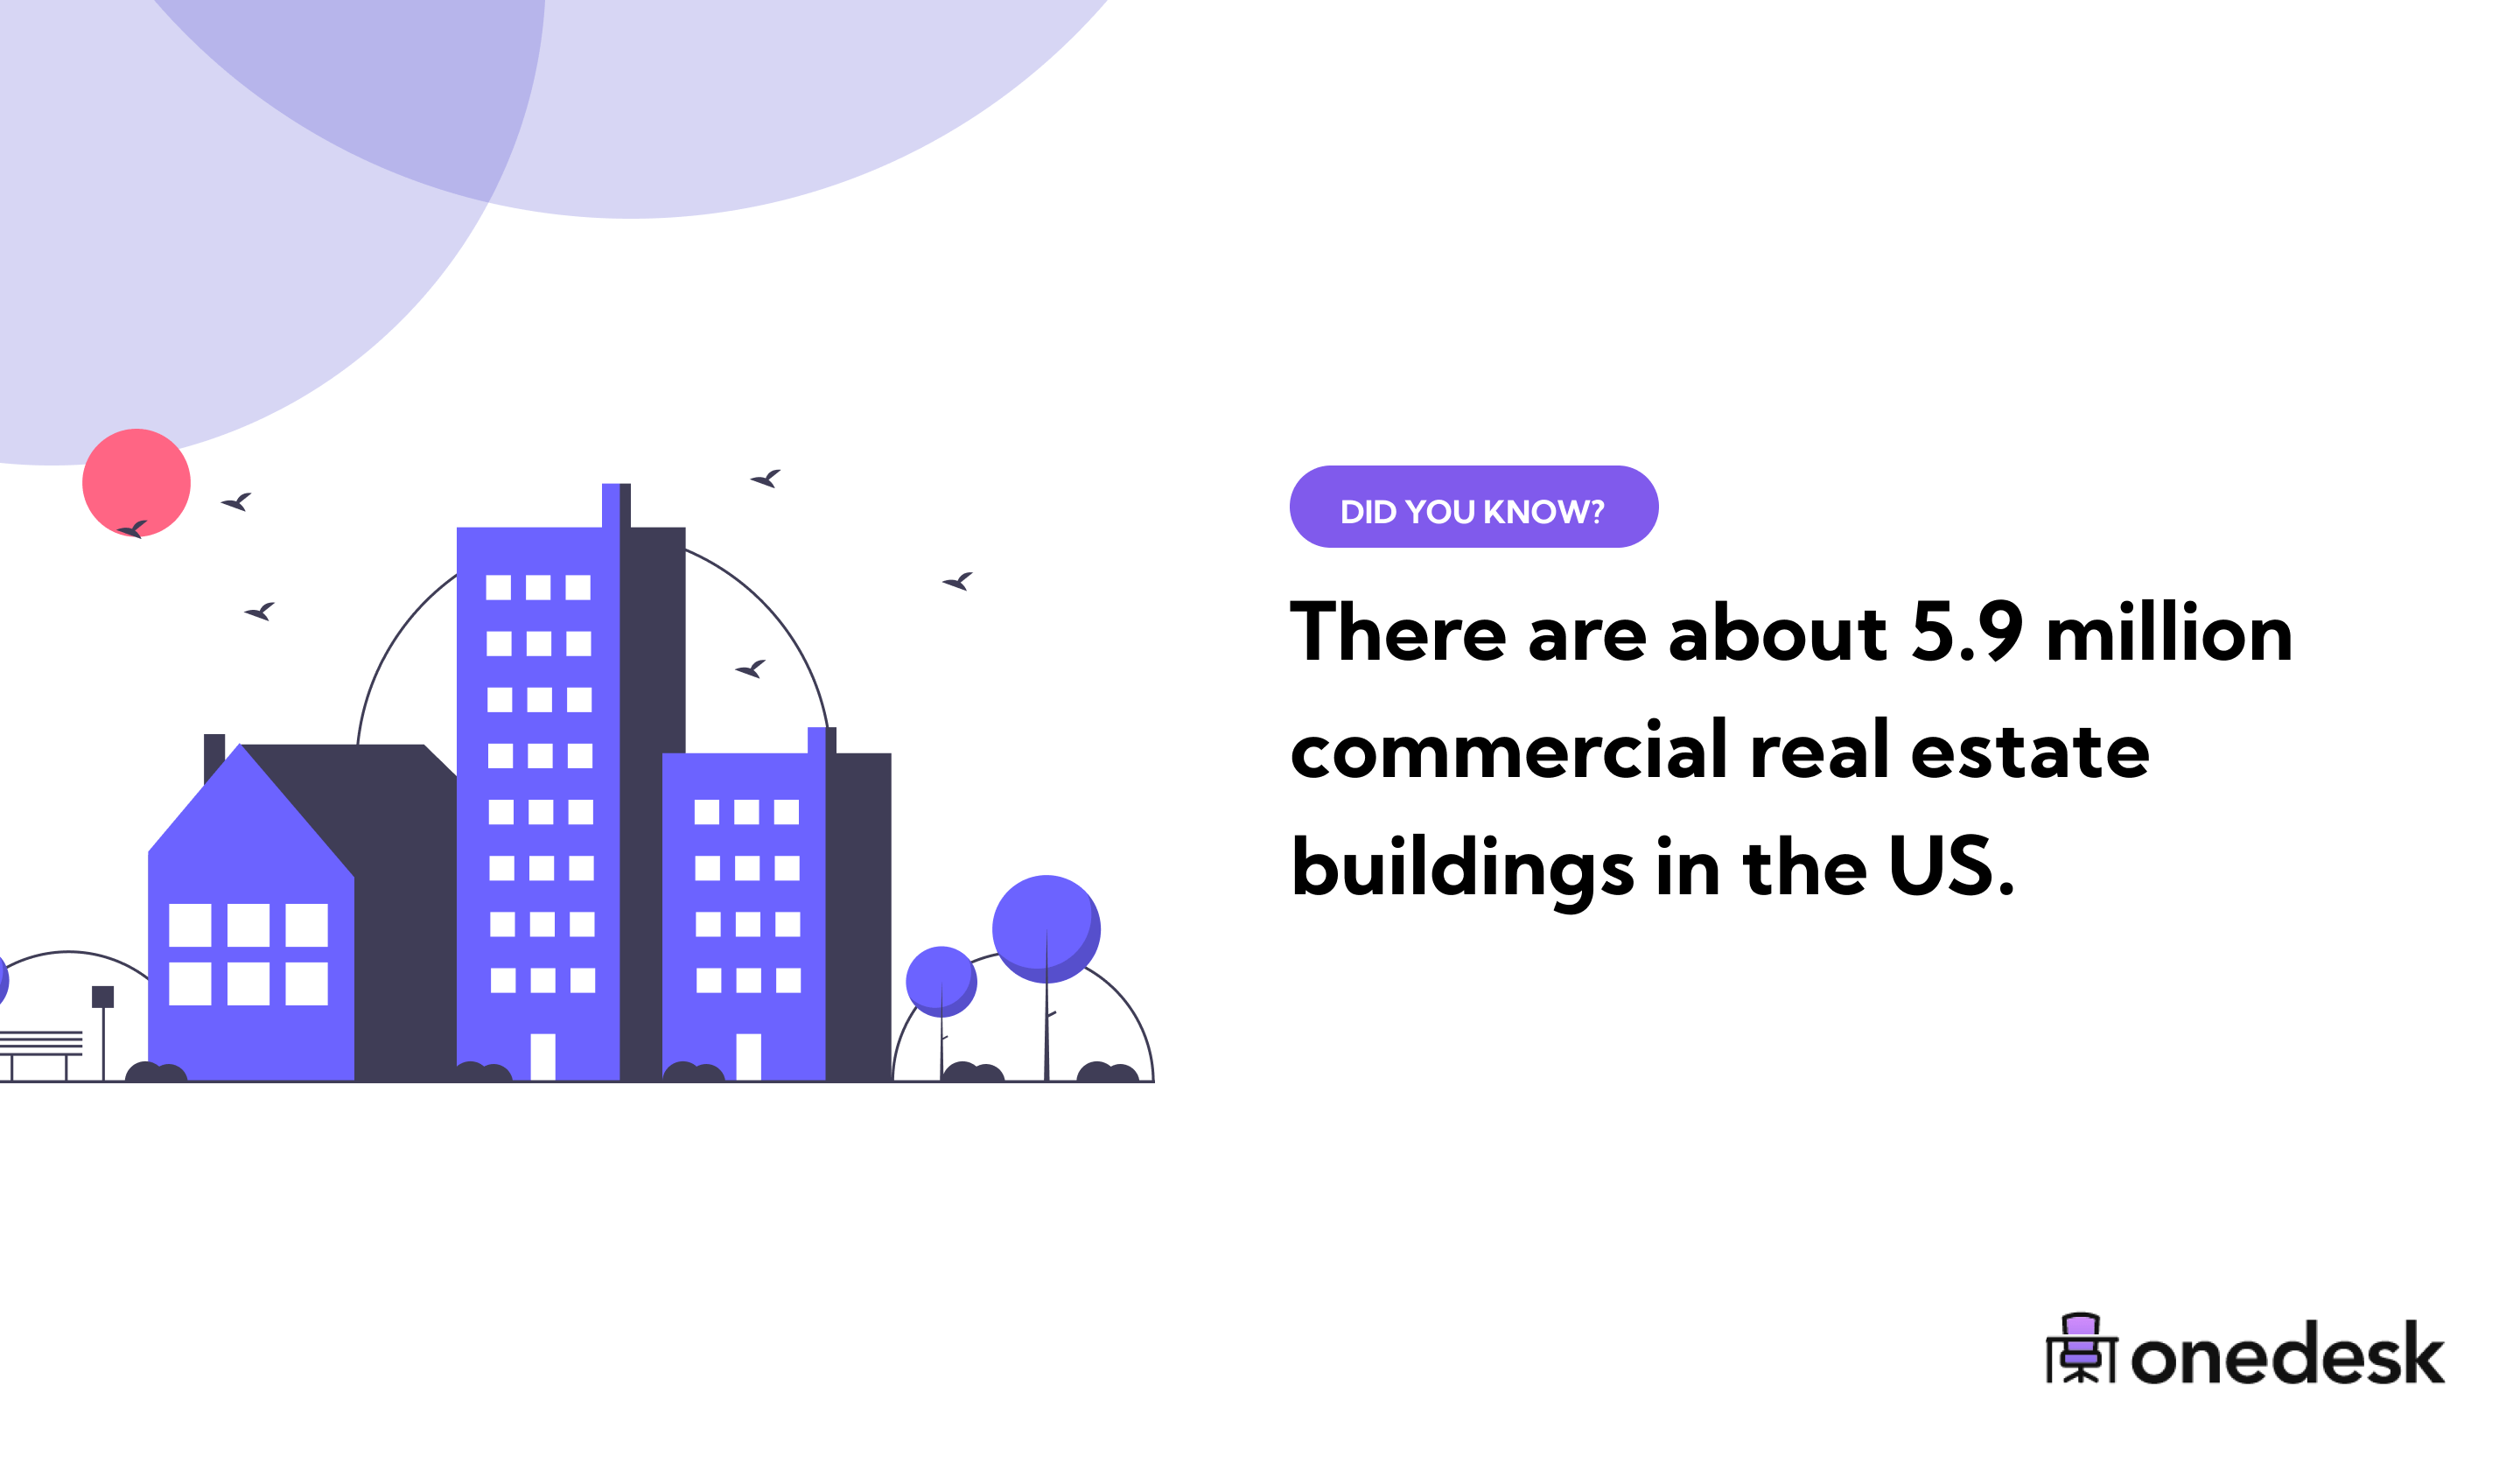 Number of Commercial Buildings in the US